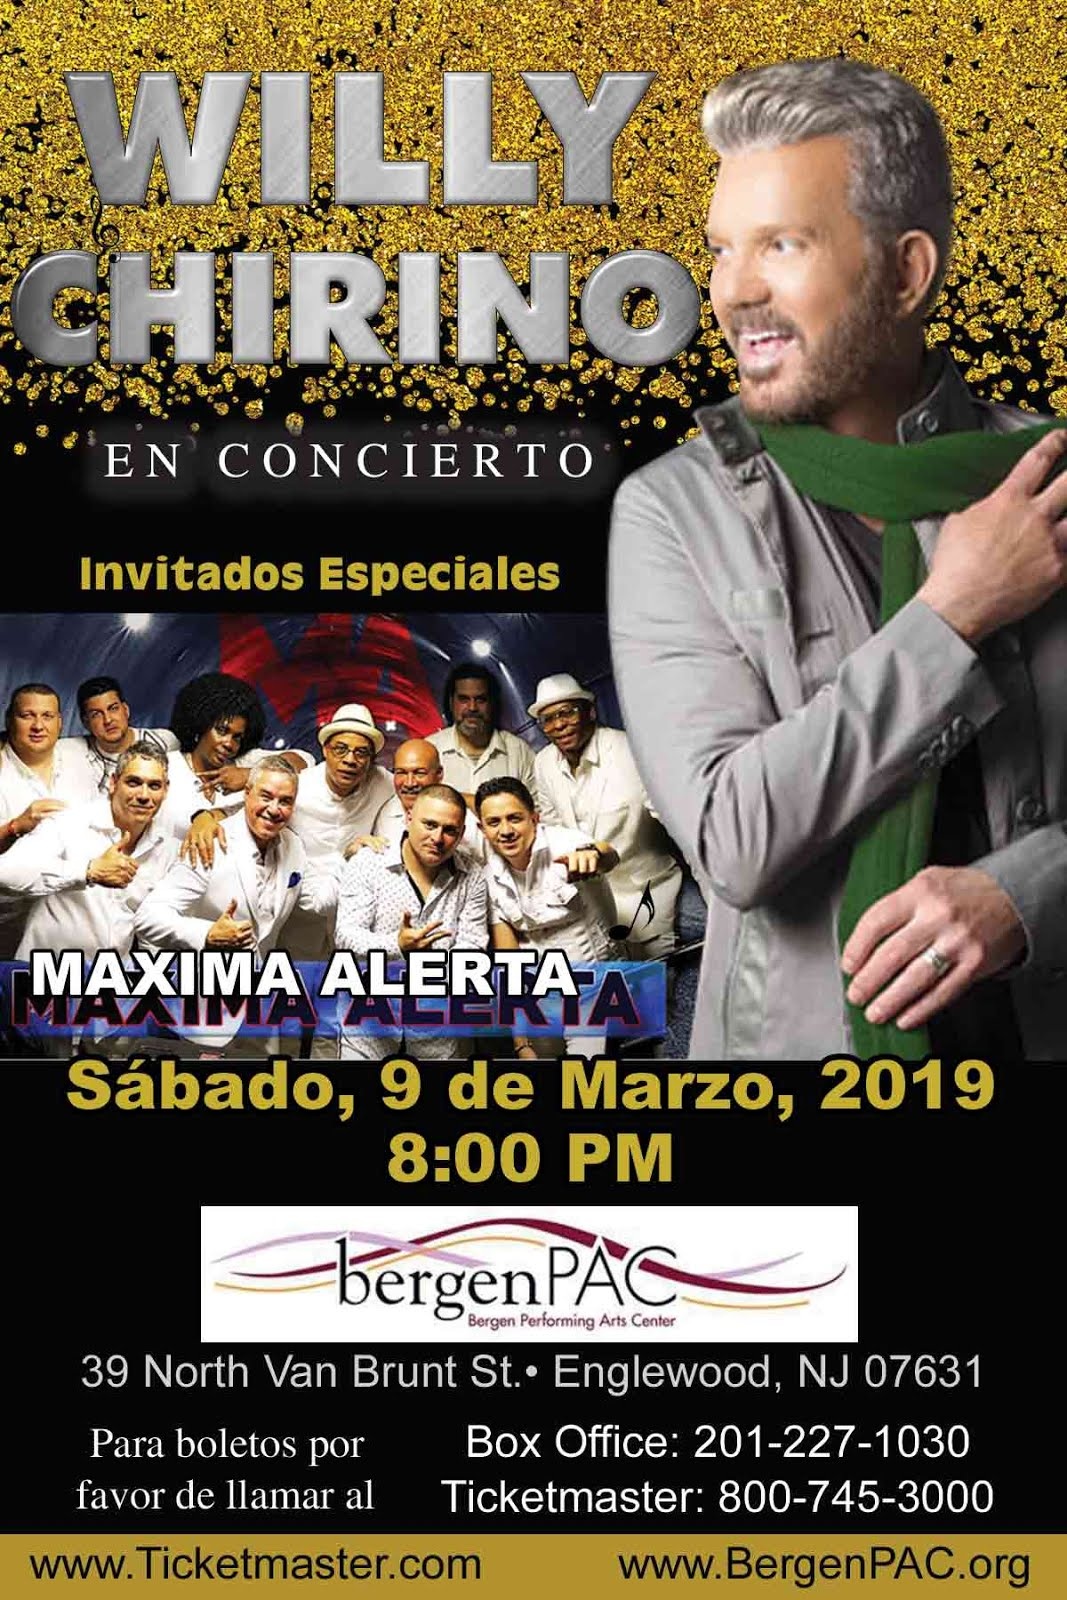 Willy Chirino @ bergenPAC